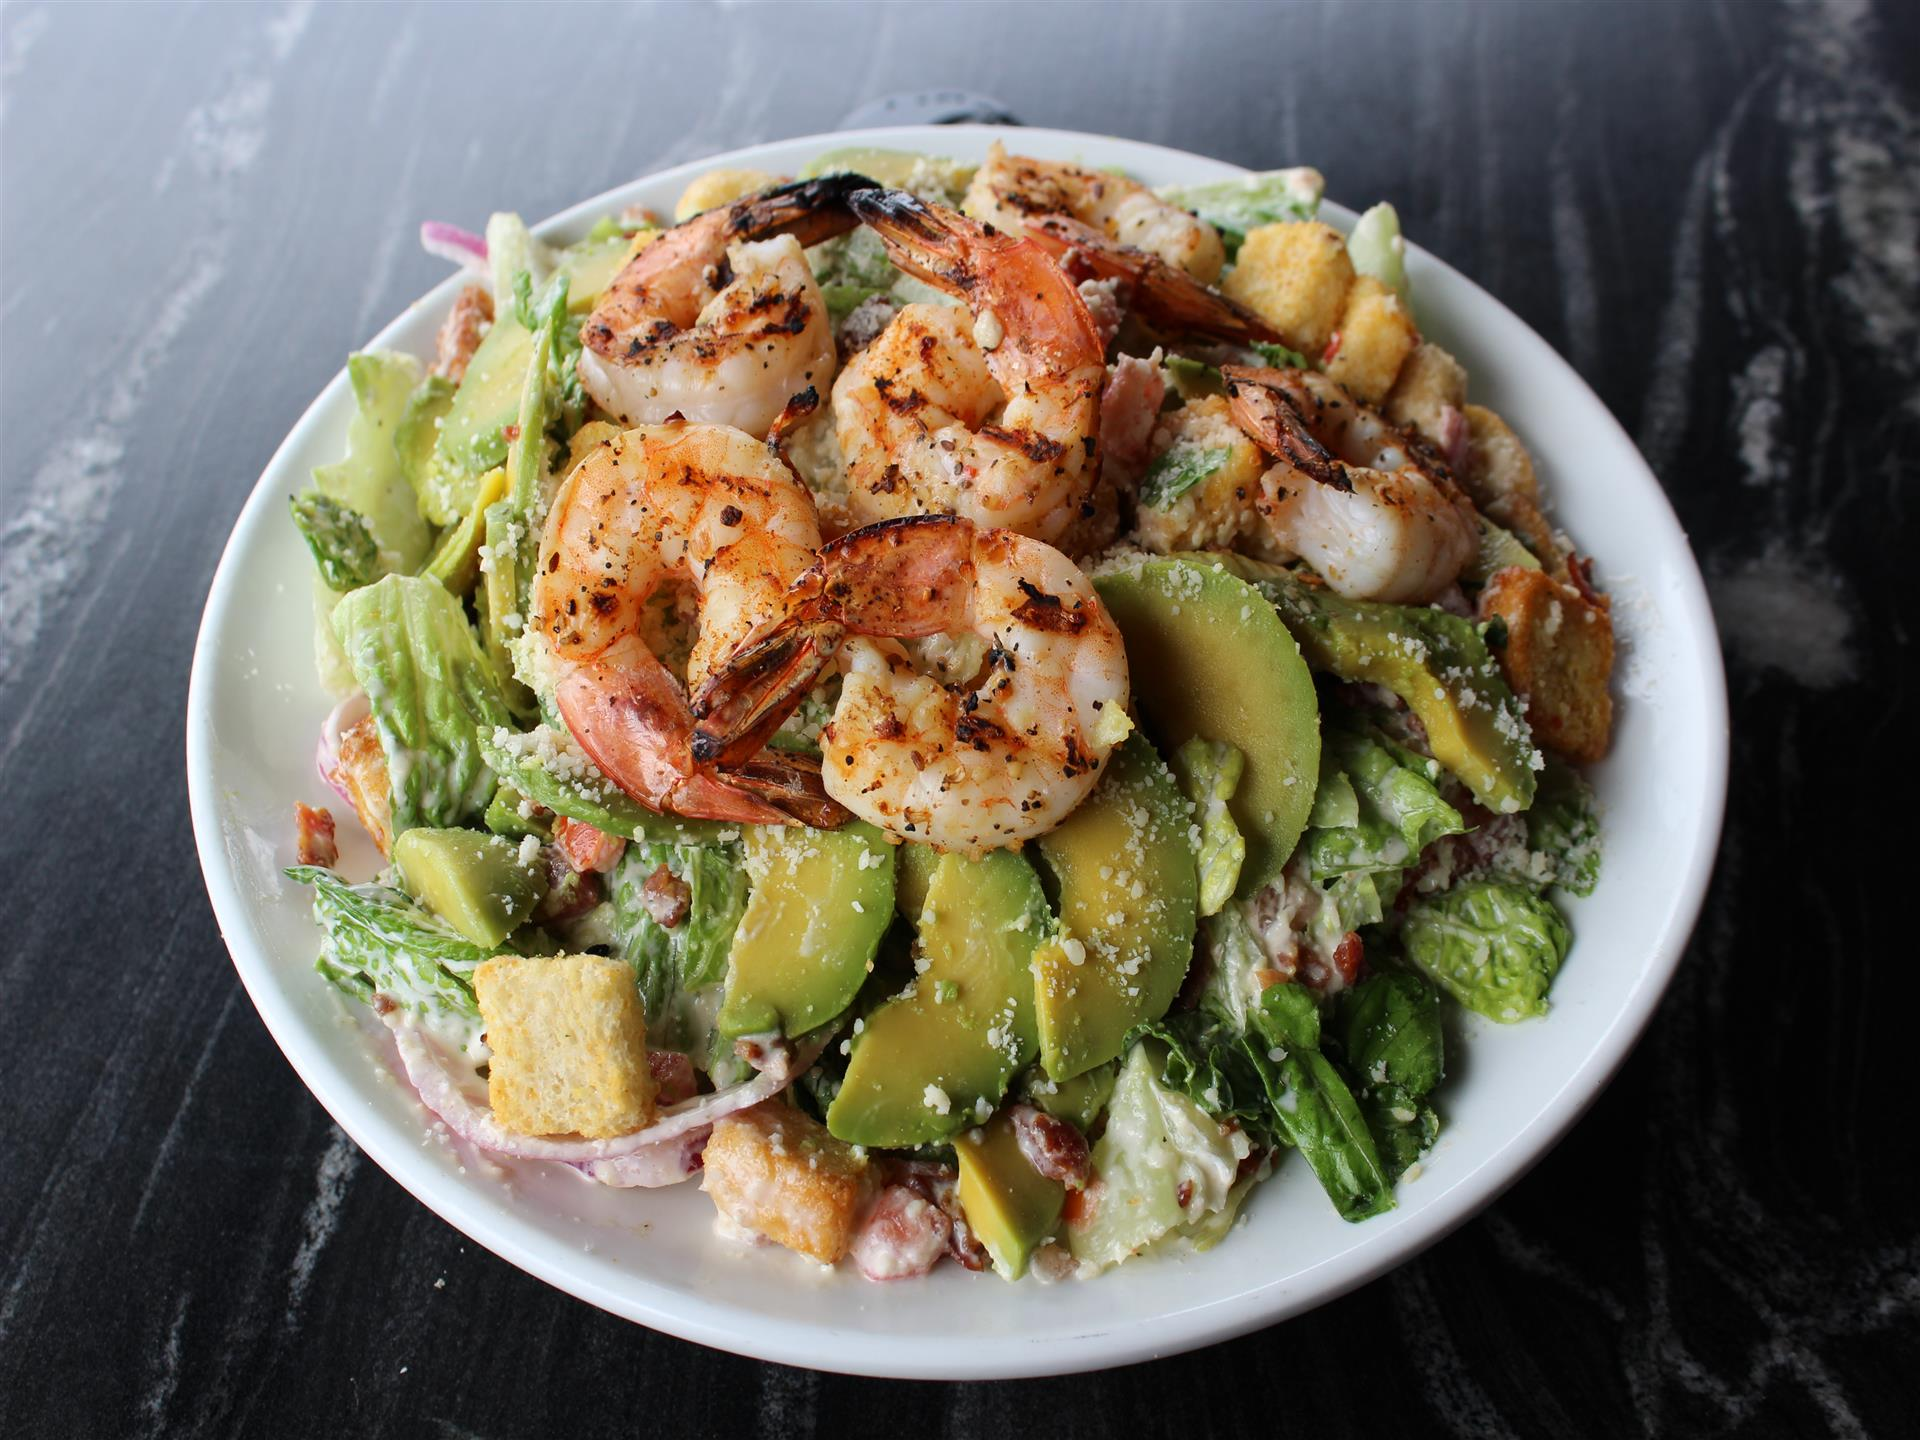 salad with grilled shrimp and avocados